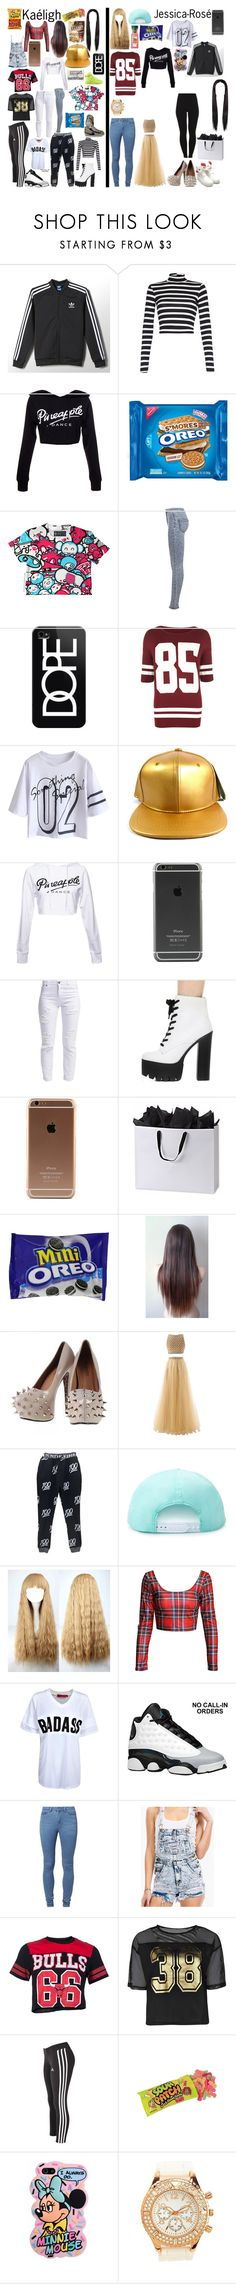 """Jessica and Kaeligh moving in together"" by royalsinthedark ❤ liked on Polyvore featuring adidas, NIKE, Quiz, Miss Selfridge, Casetify, WearAll, Hershey's, Handle, CO and RADisRAD"